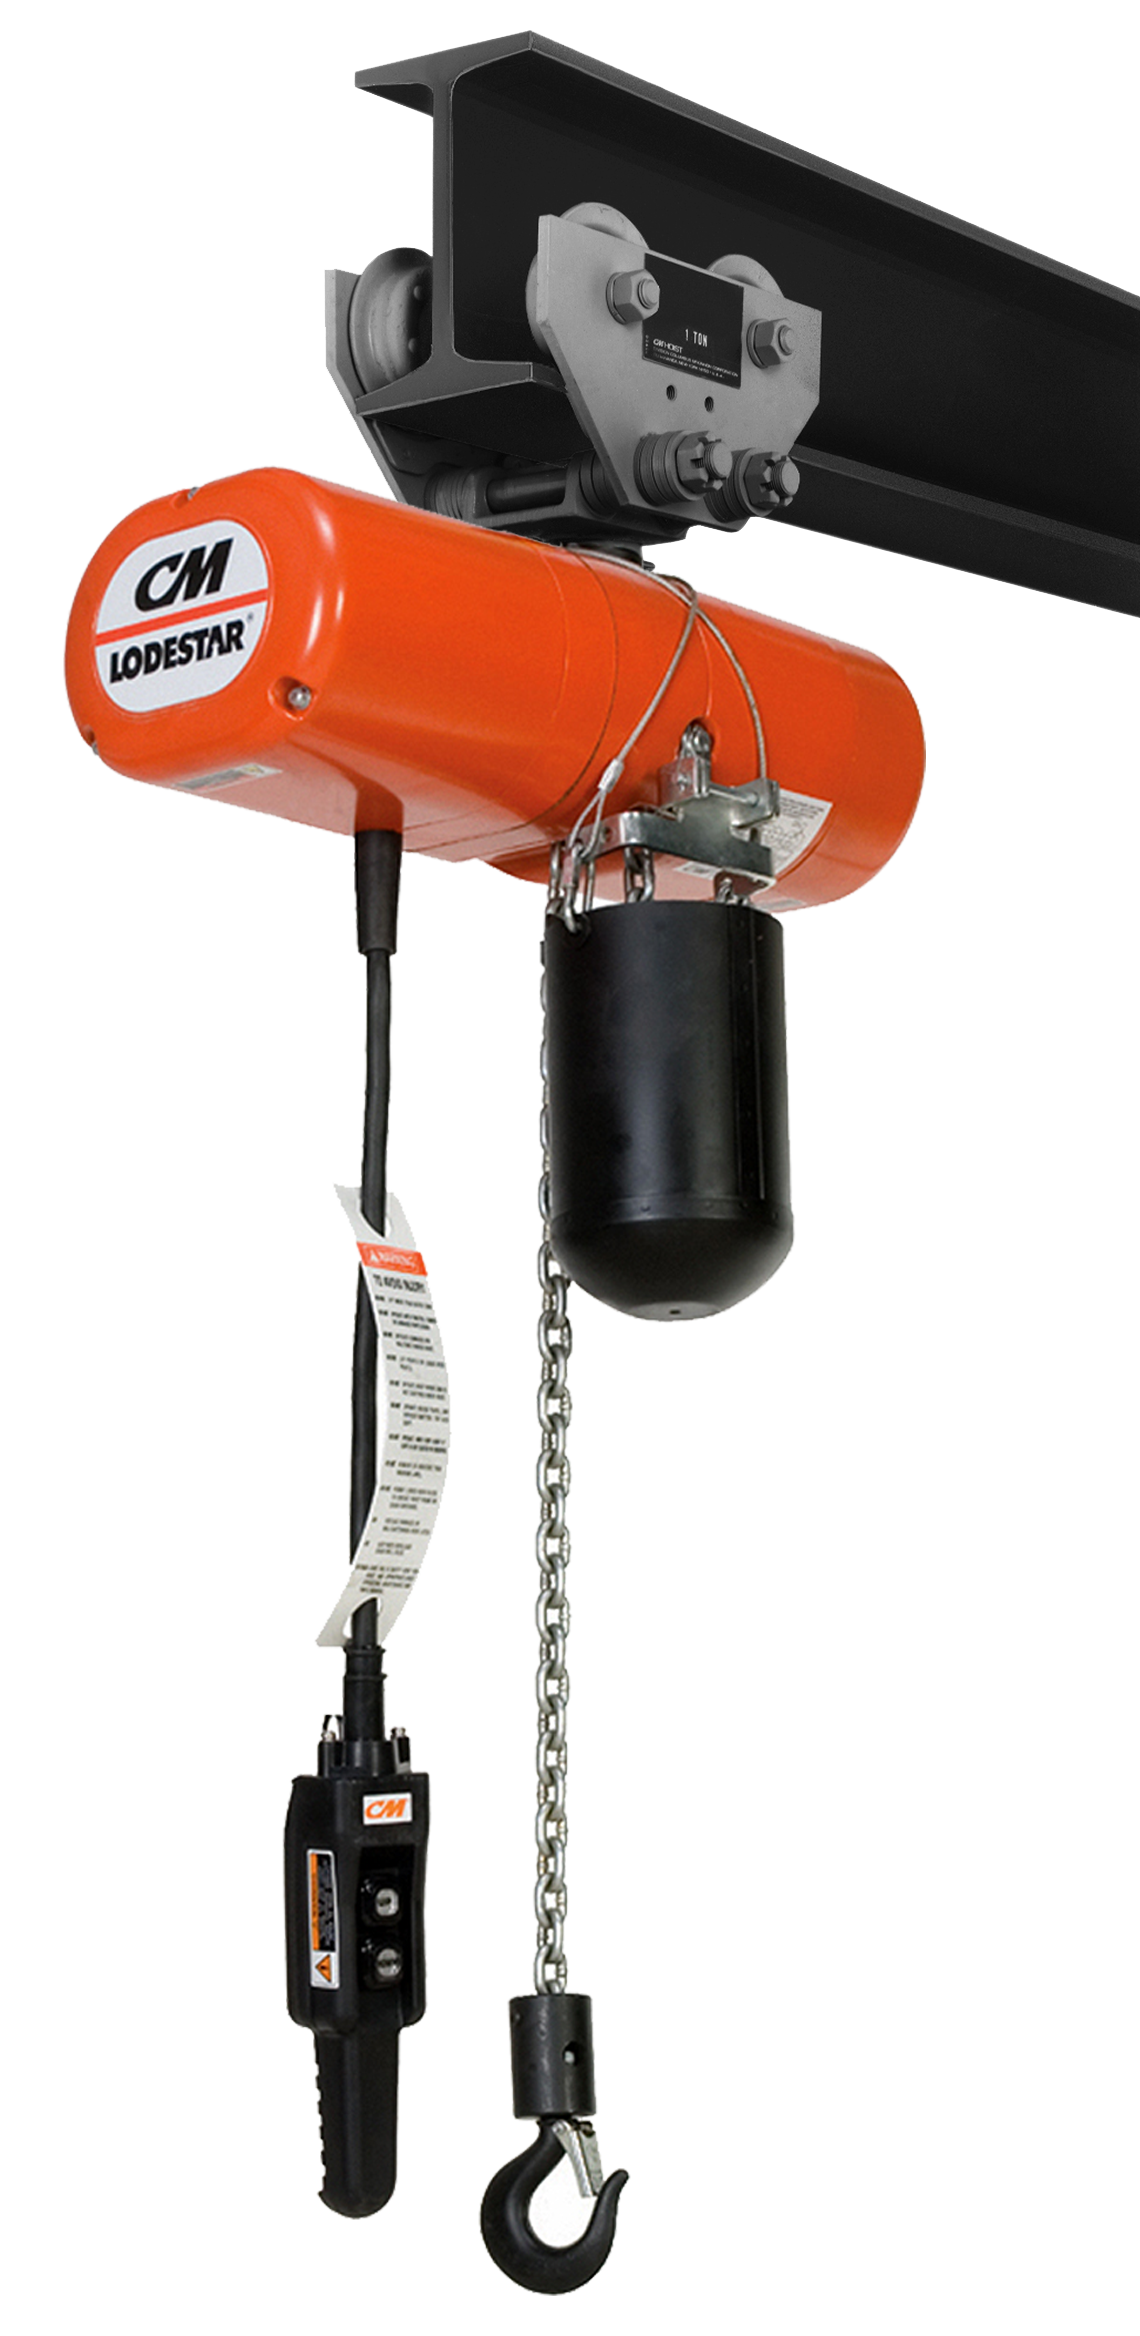 CM LodeStar Electric Chain Hoist with Push Trolley and Chain Container